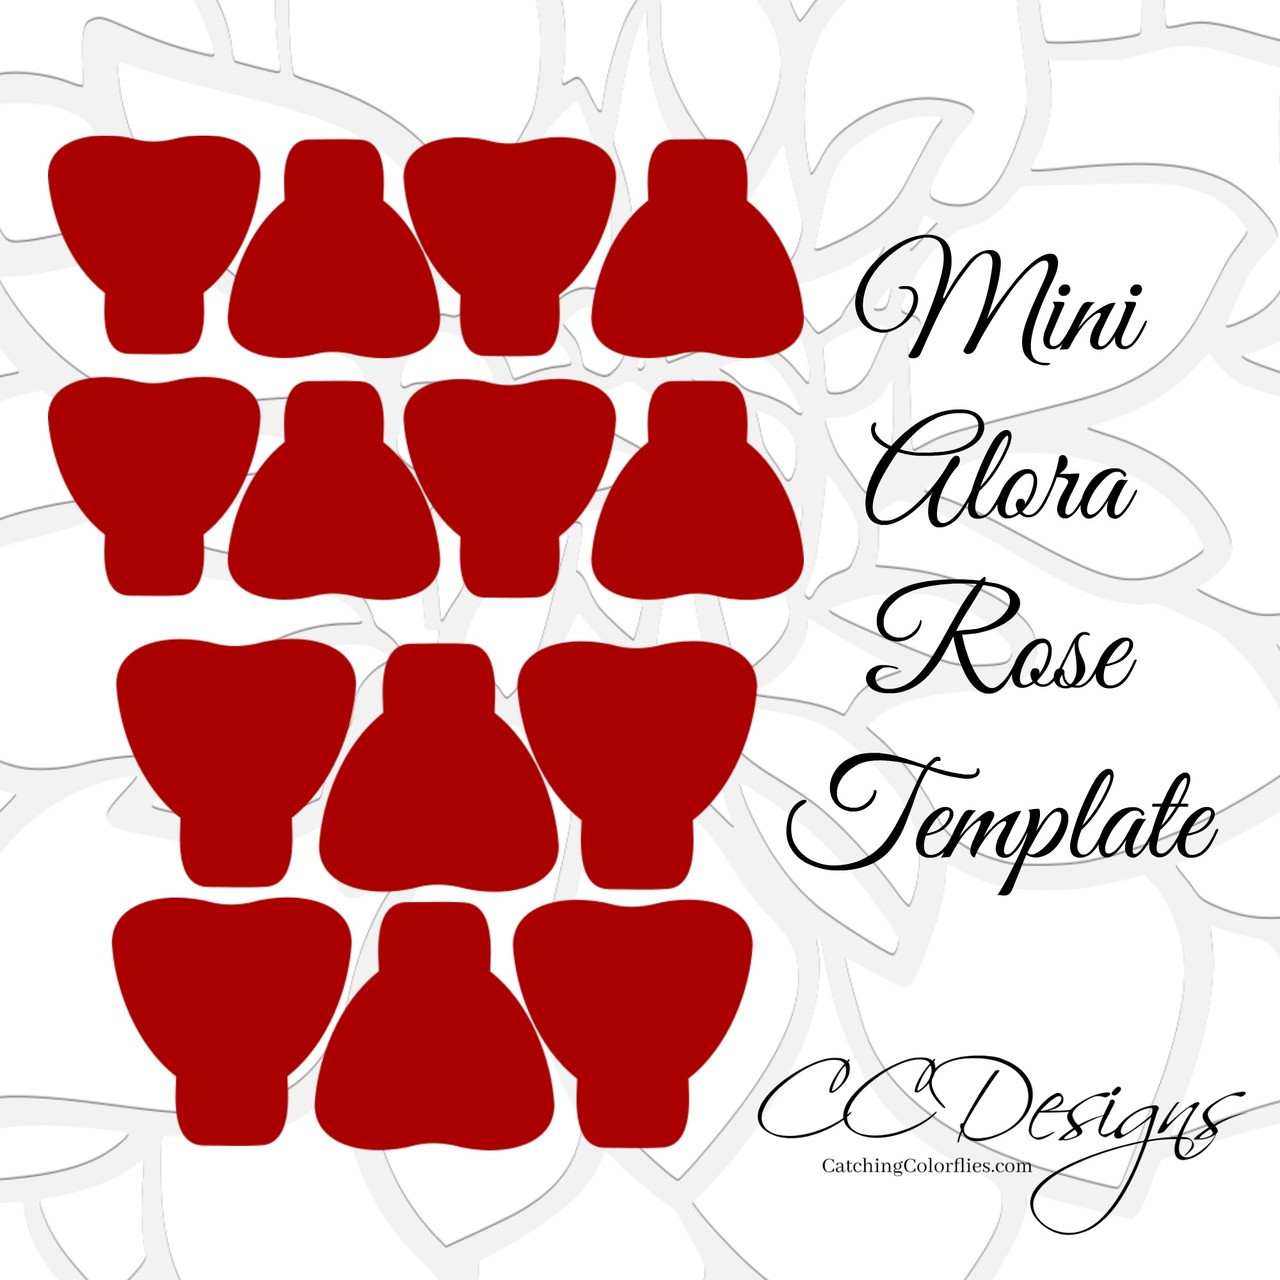 mini alora rose small paper flower rose template catching colorflies